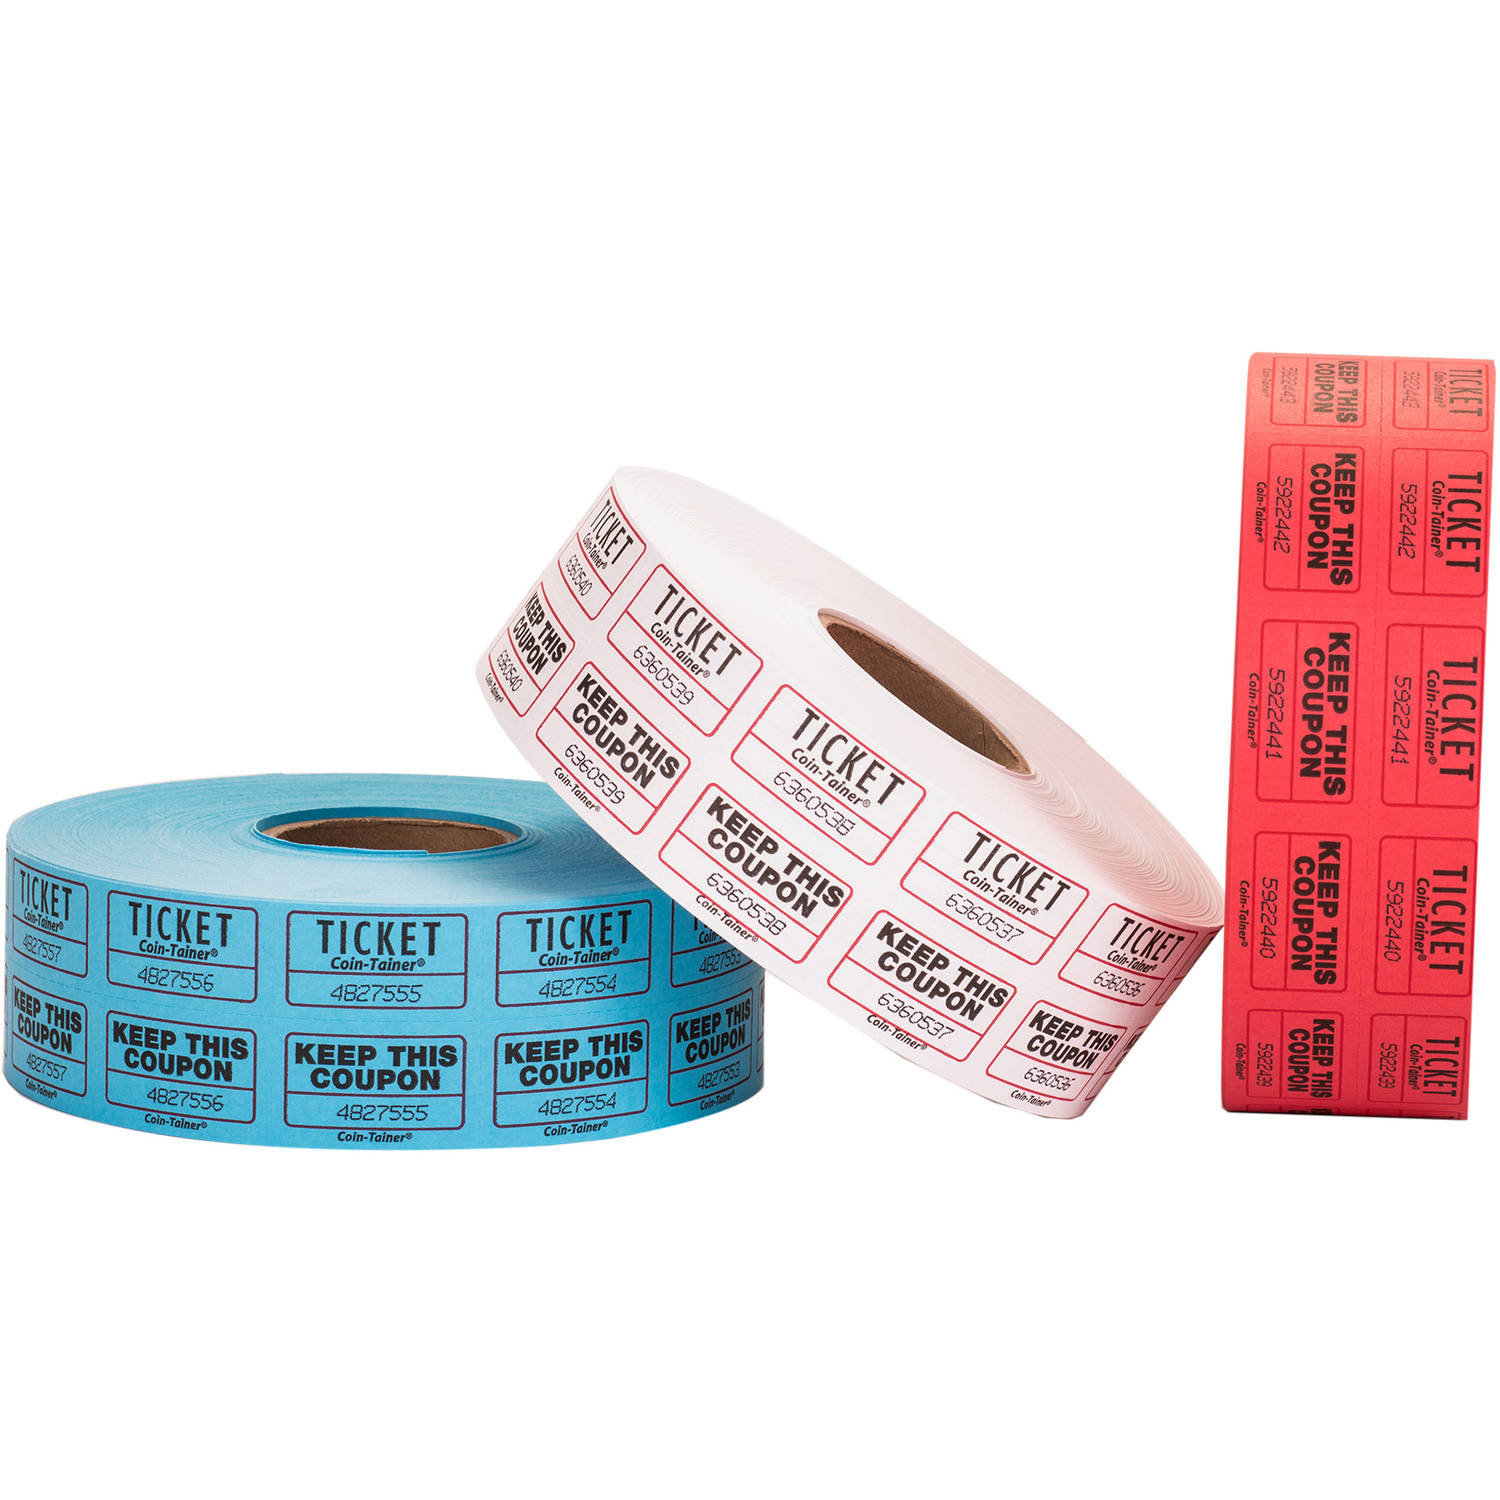 Pen+Gear Double Ticket Roll, 2000-count, Assorted Colors